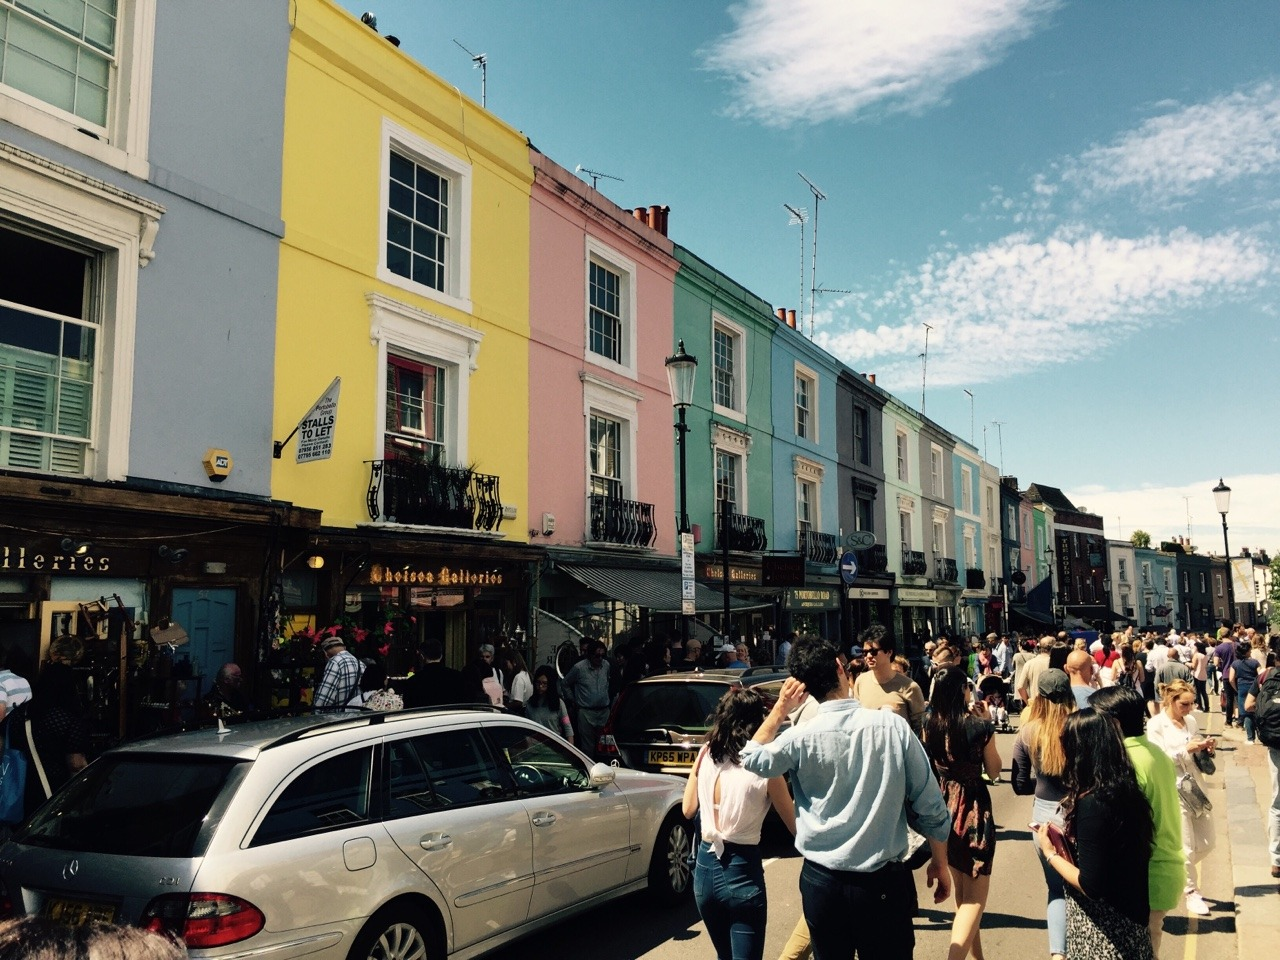 Looking for a day of shopping without spending a fortune? Second-hand shopping is great for your budget: here's our favorite places in London!